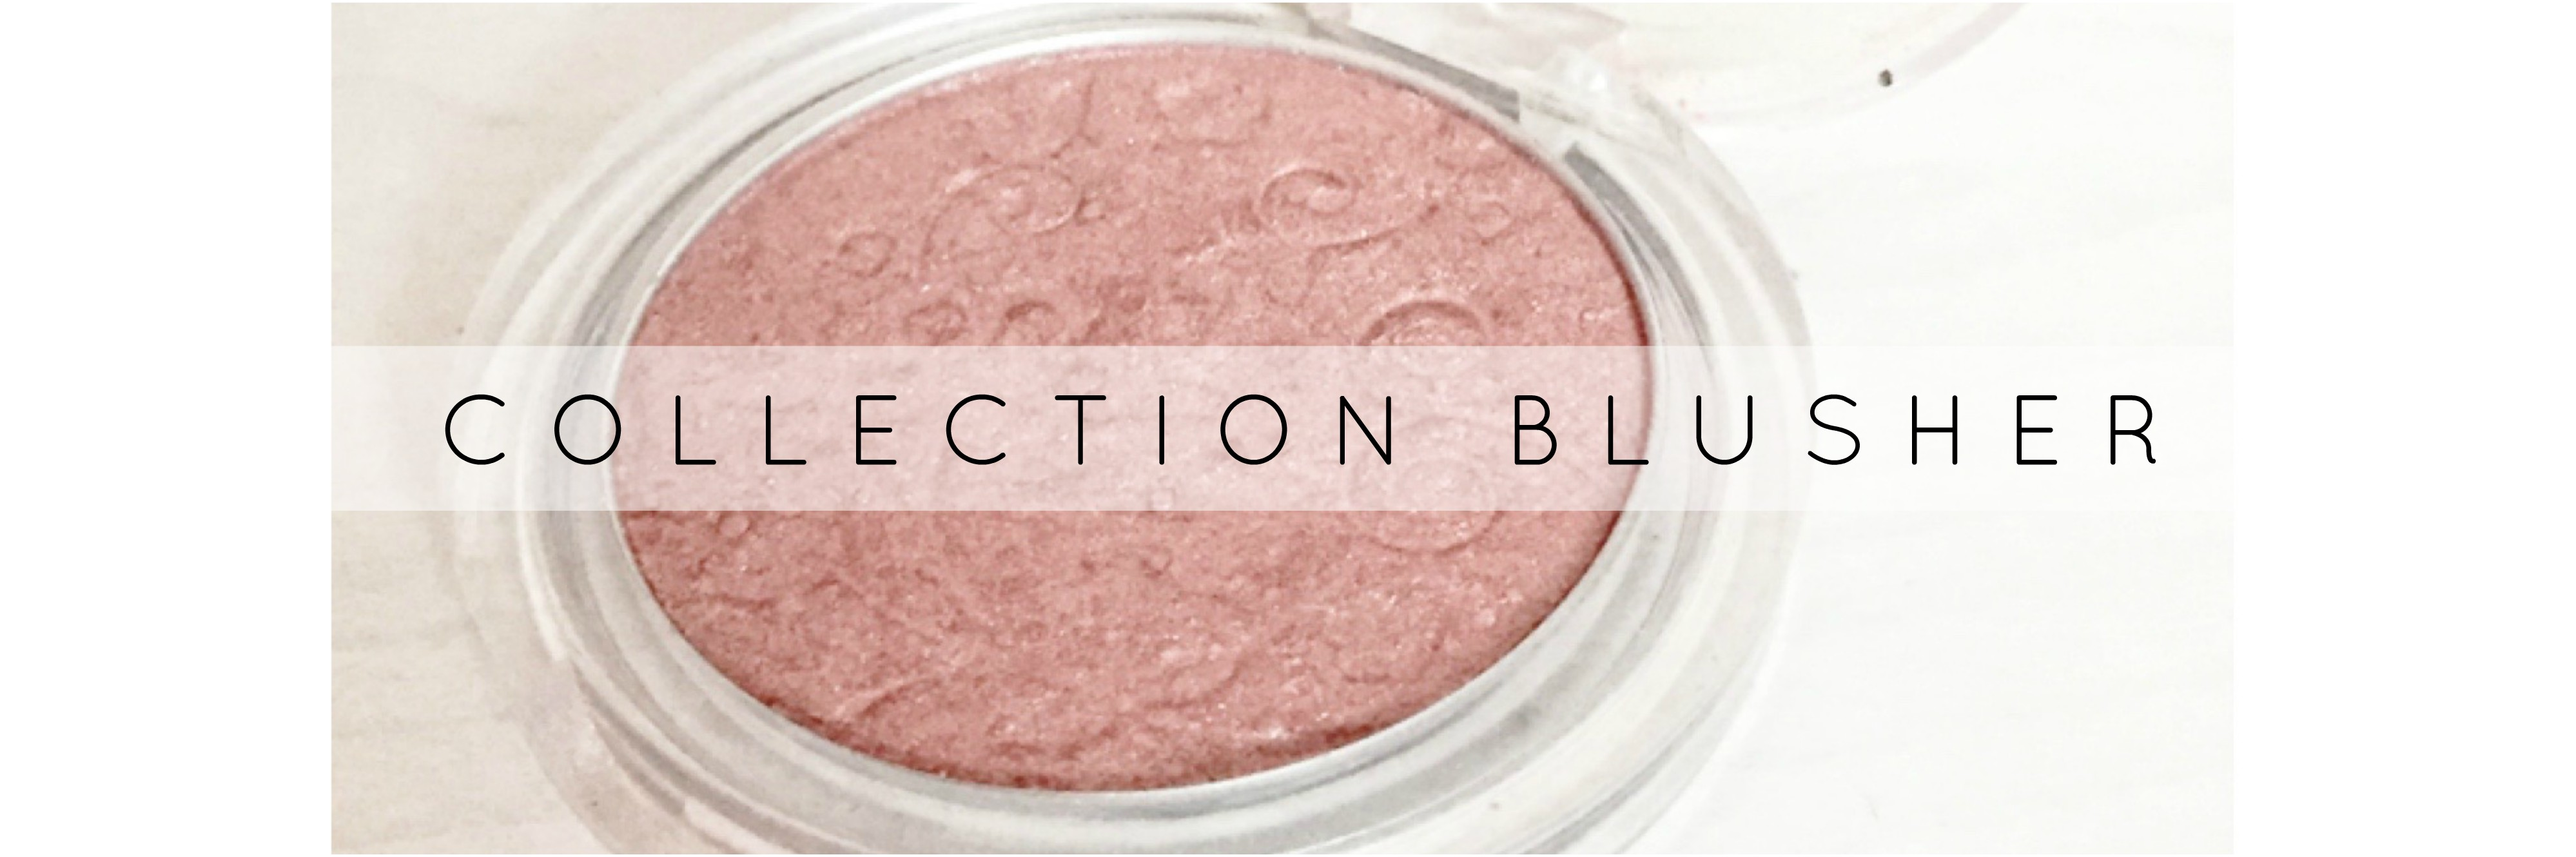 Collection blusher